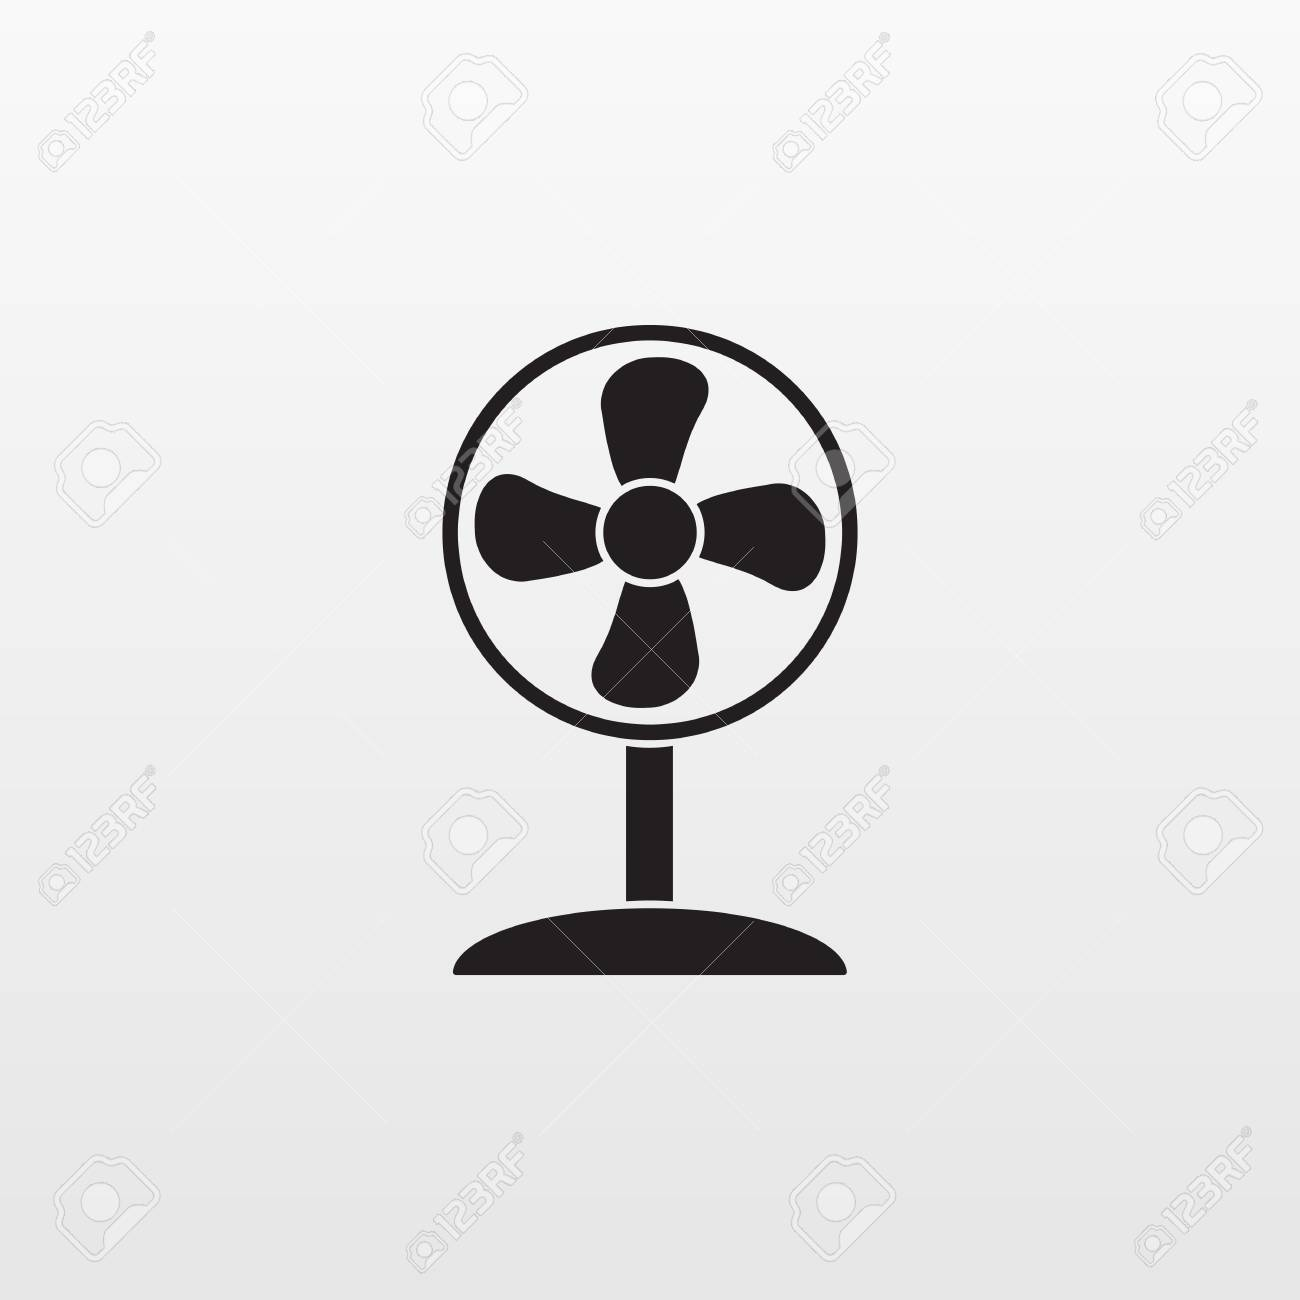 Ventilator Modern Gray Fan Icon Isolated Background Modern Simple Flat Ventilator